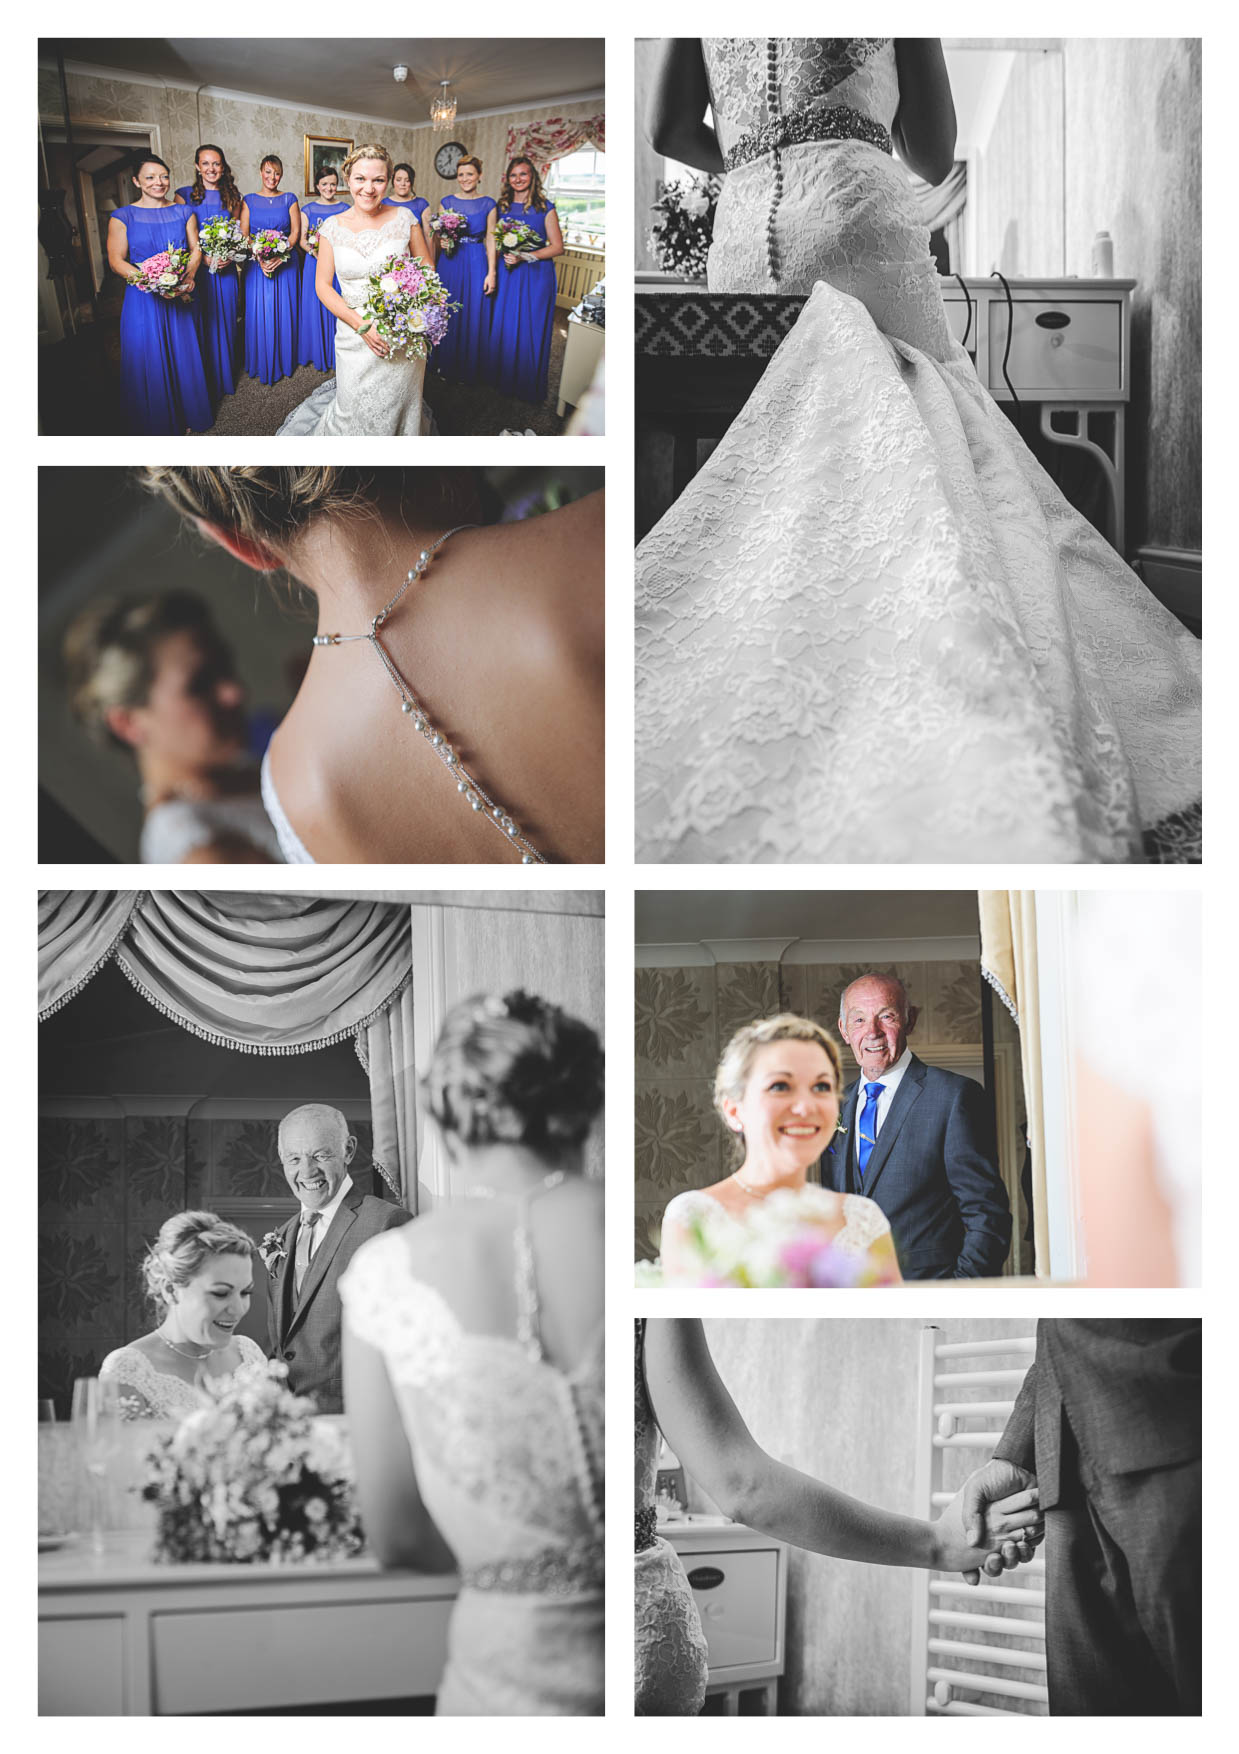 Images of bridal prep in the cariad suite at llanerch vineyard during a wedding photographed by owen mathias